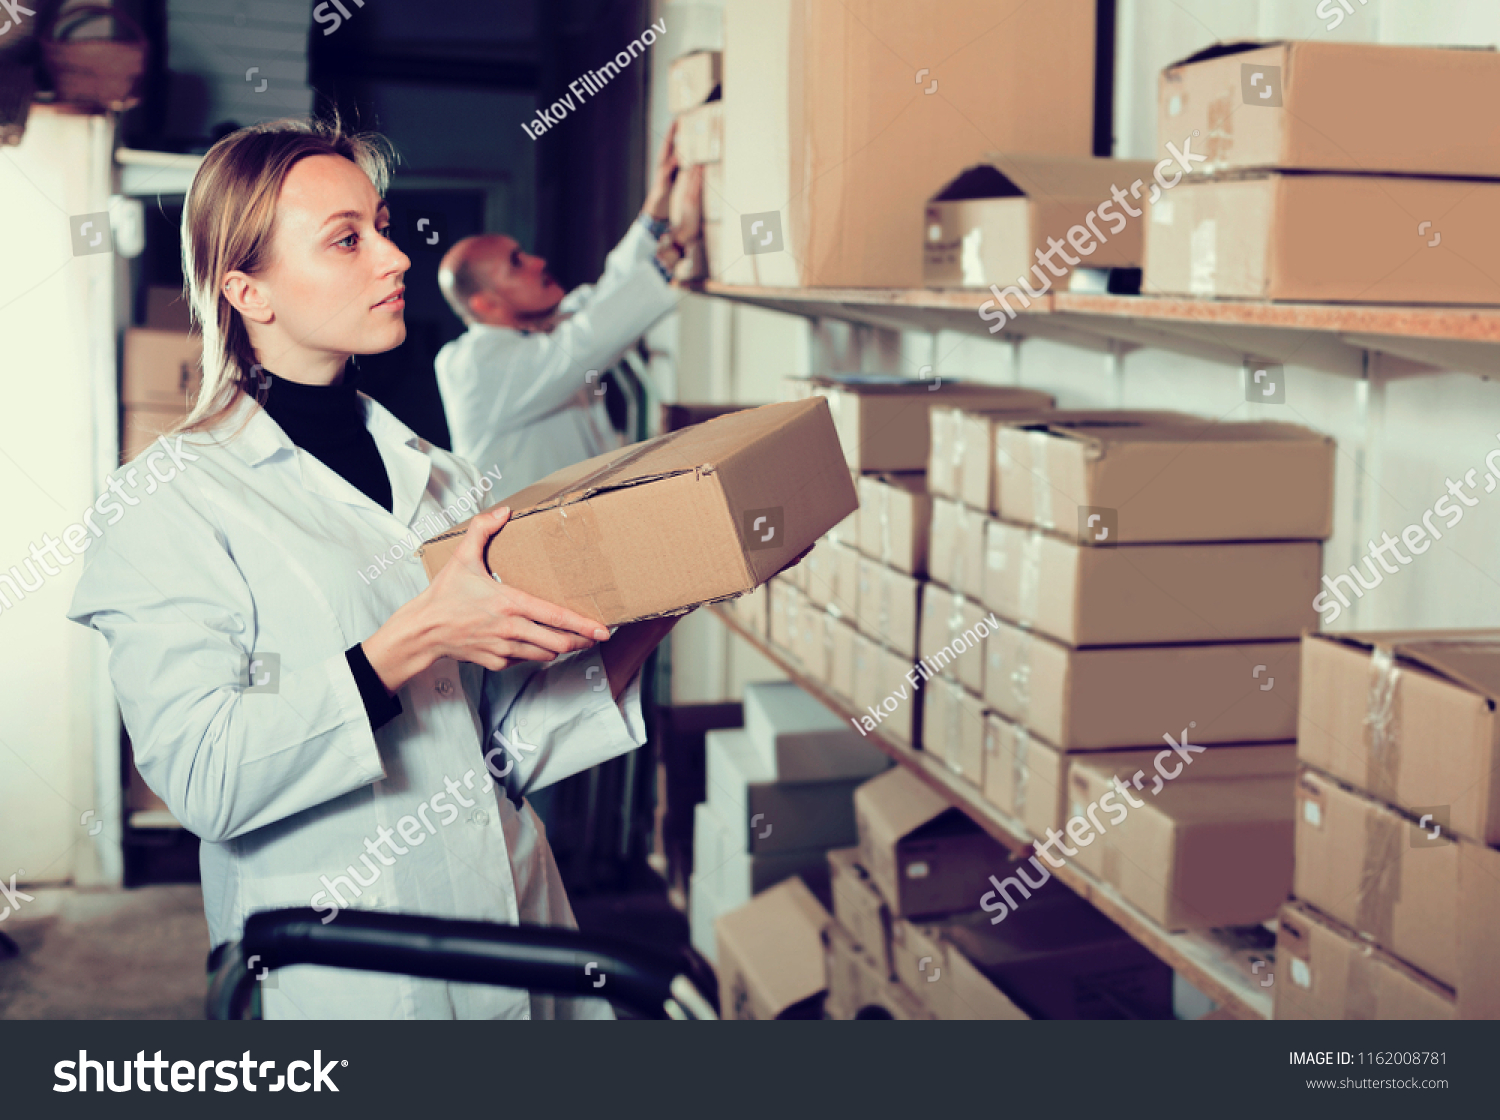 woman worker standing boxes production workplace stock photo edit